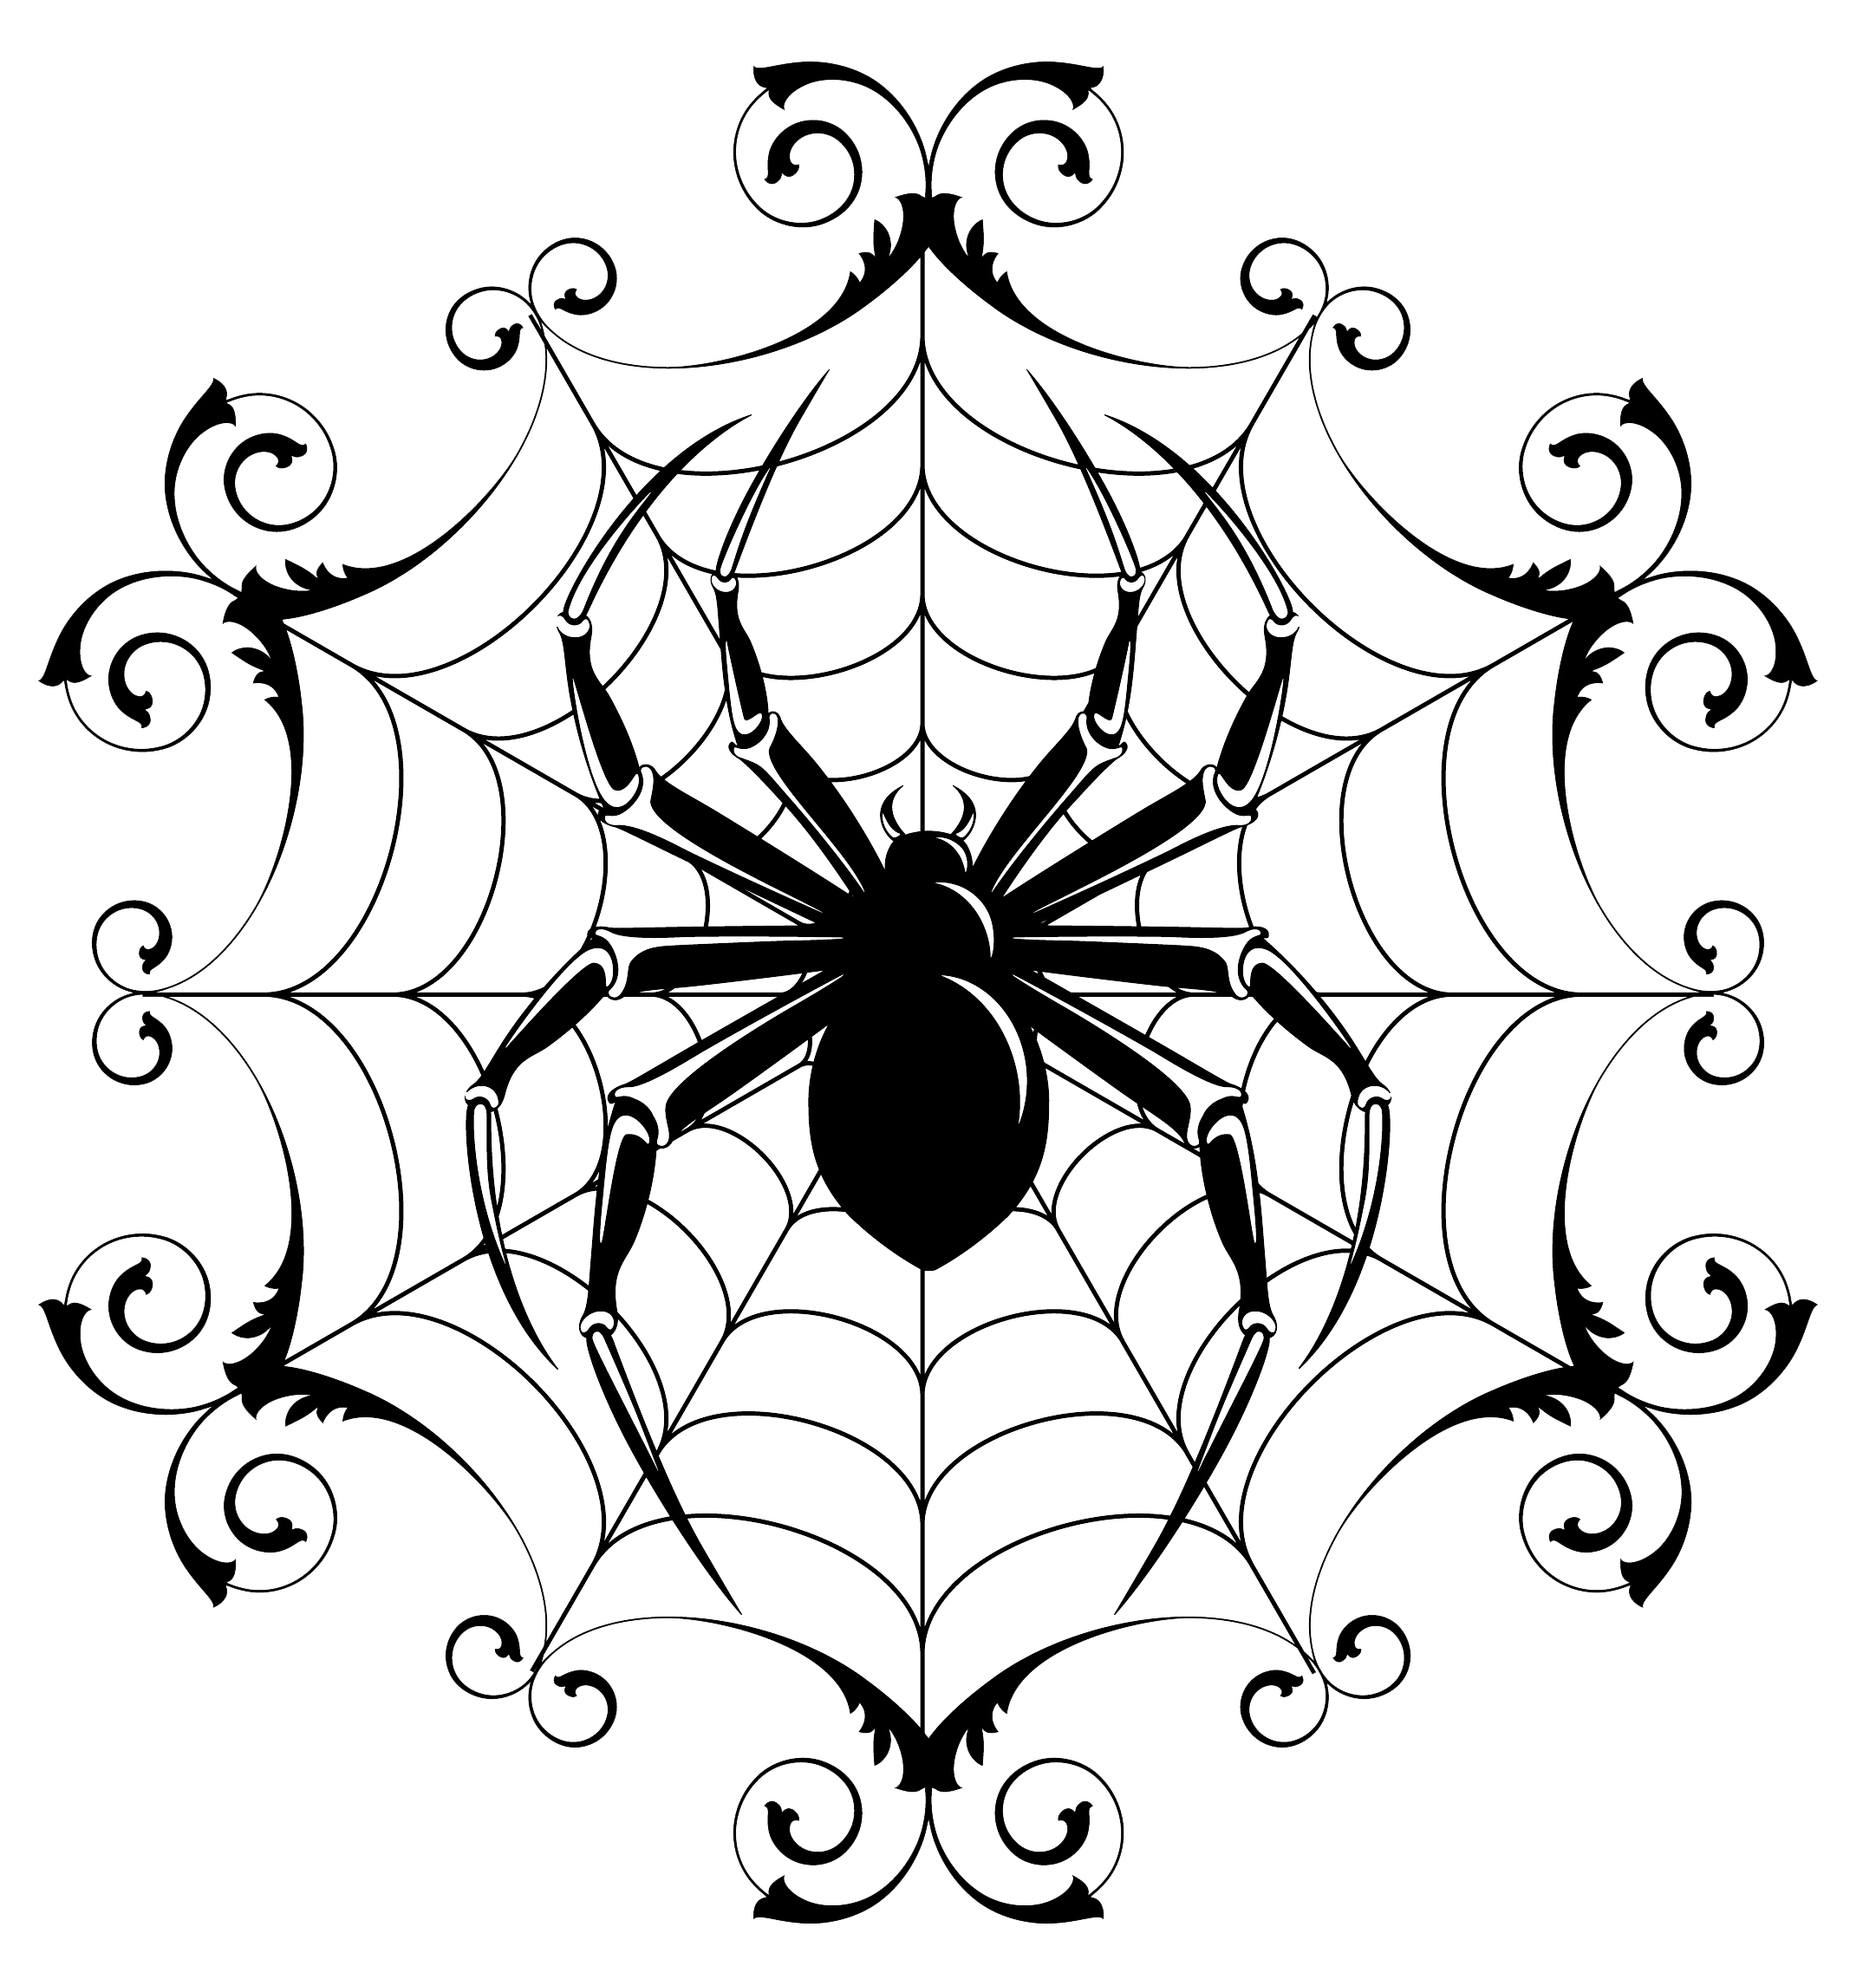 Spider Drawing Halloween Clipart Best Clipart Best Black And White Drawing Drawings Halloween Drawings